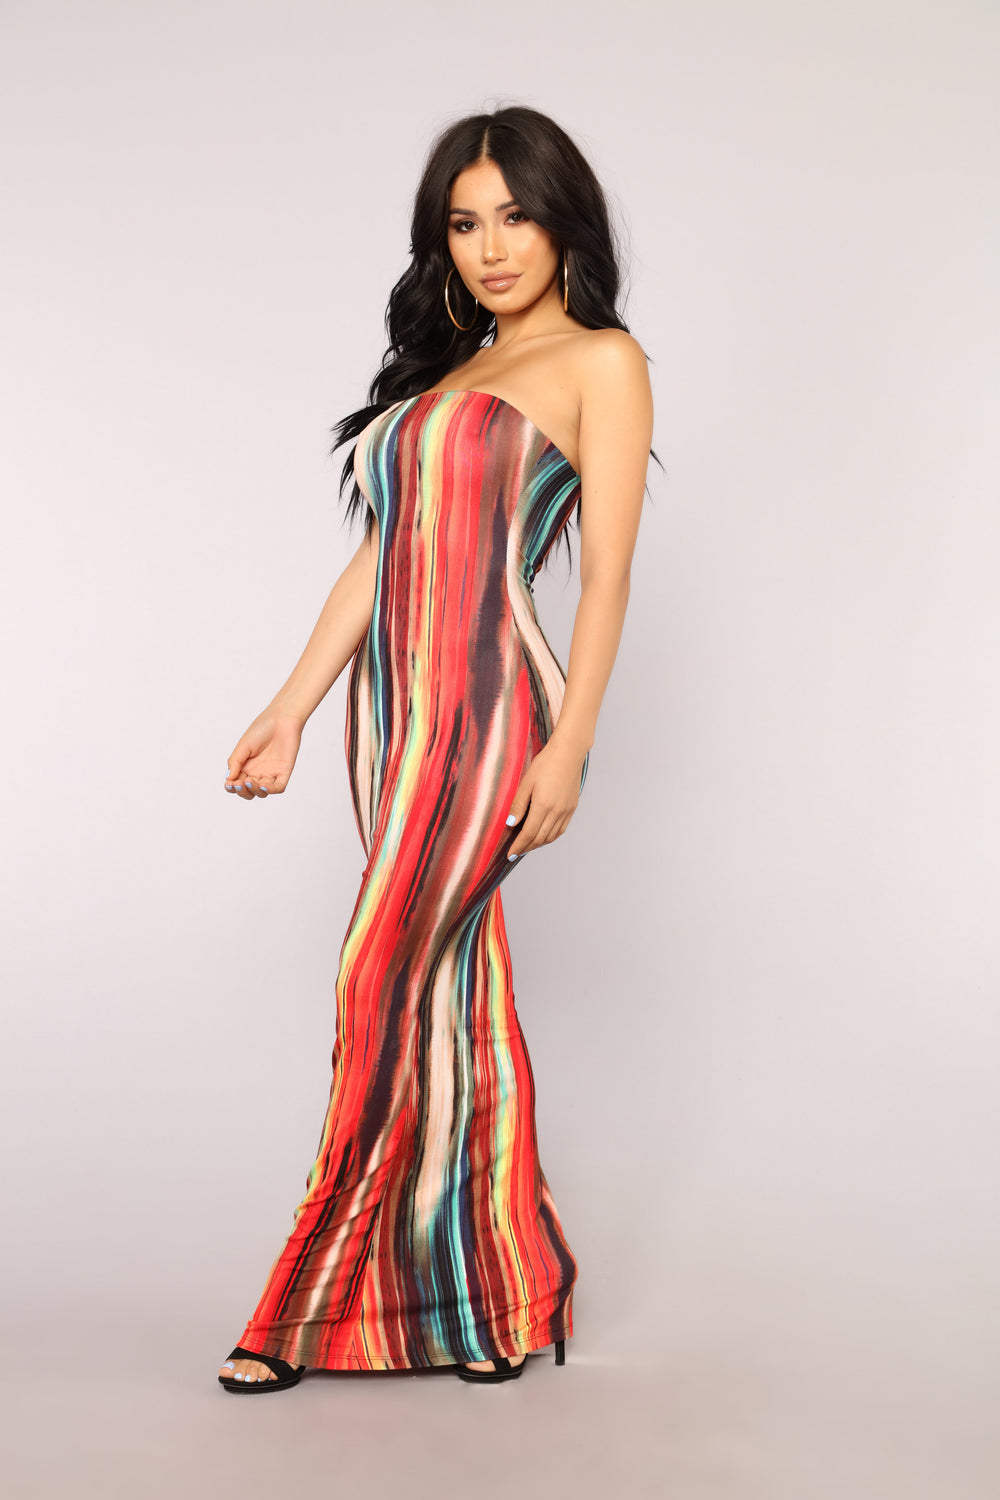 Work Of Art Dress - Red/Multi